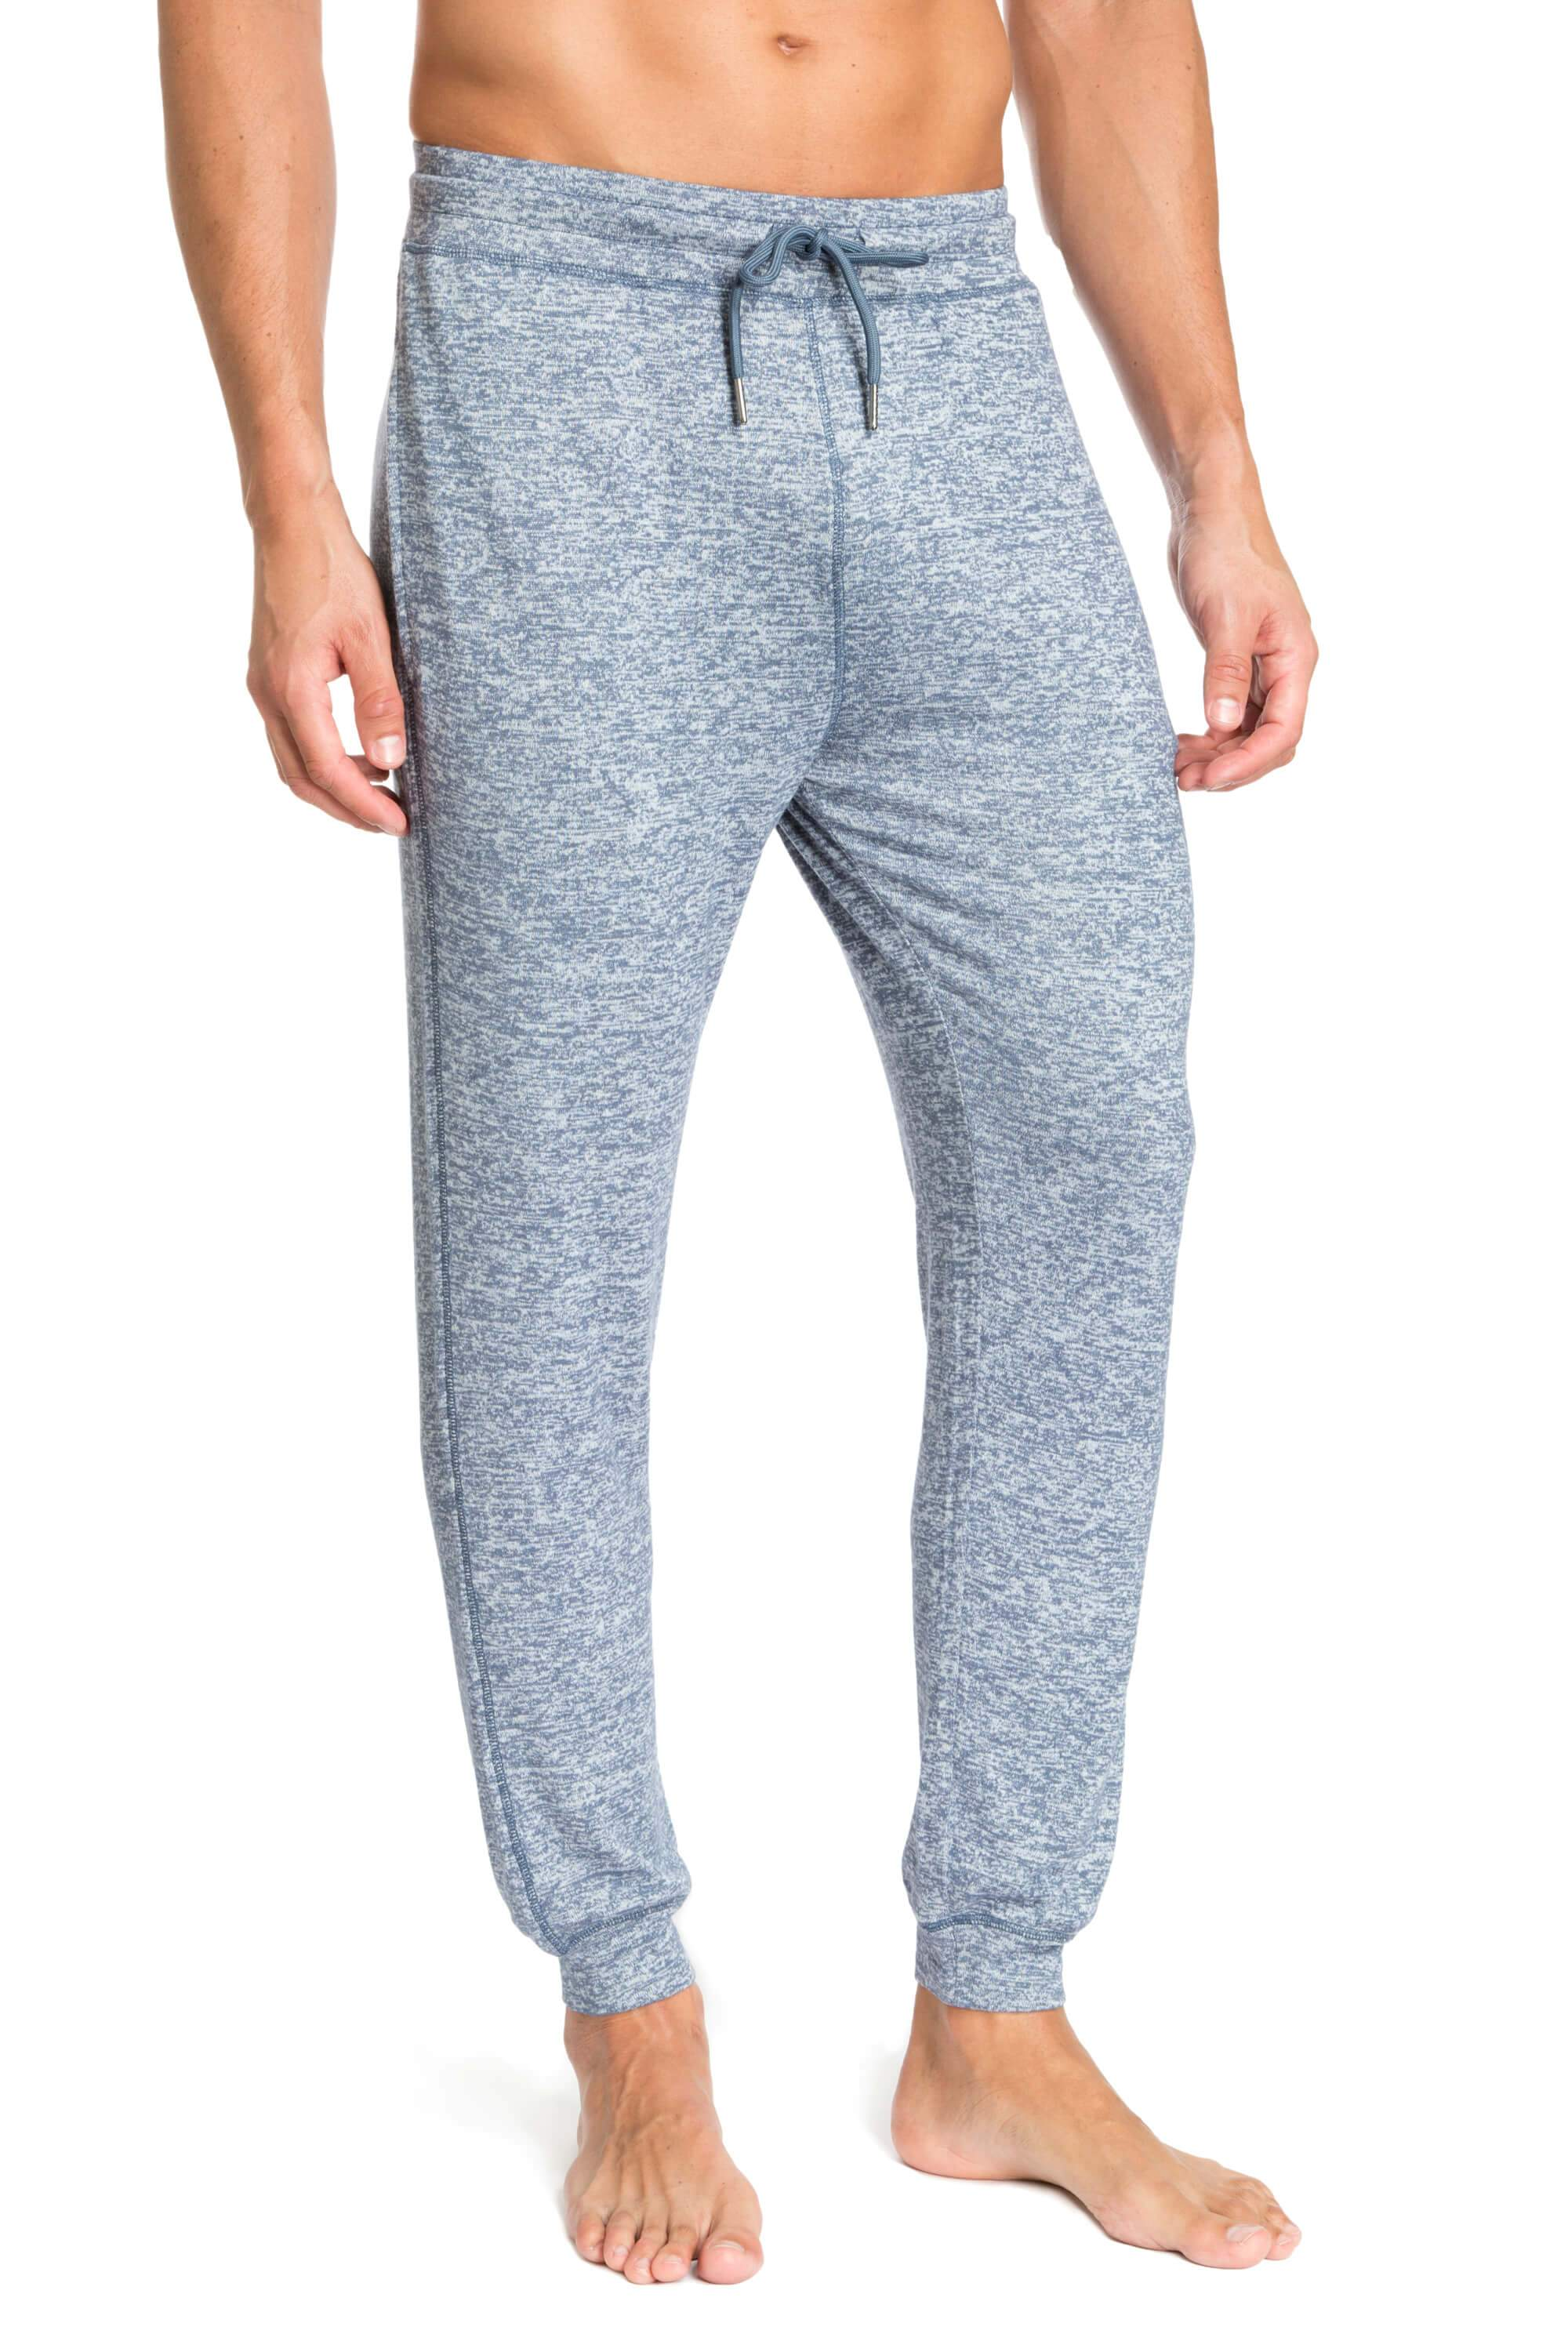 Light Blue Melange Designer Joggers for Men JLJGR1-400 - Front - Jared Lang